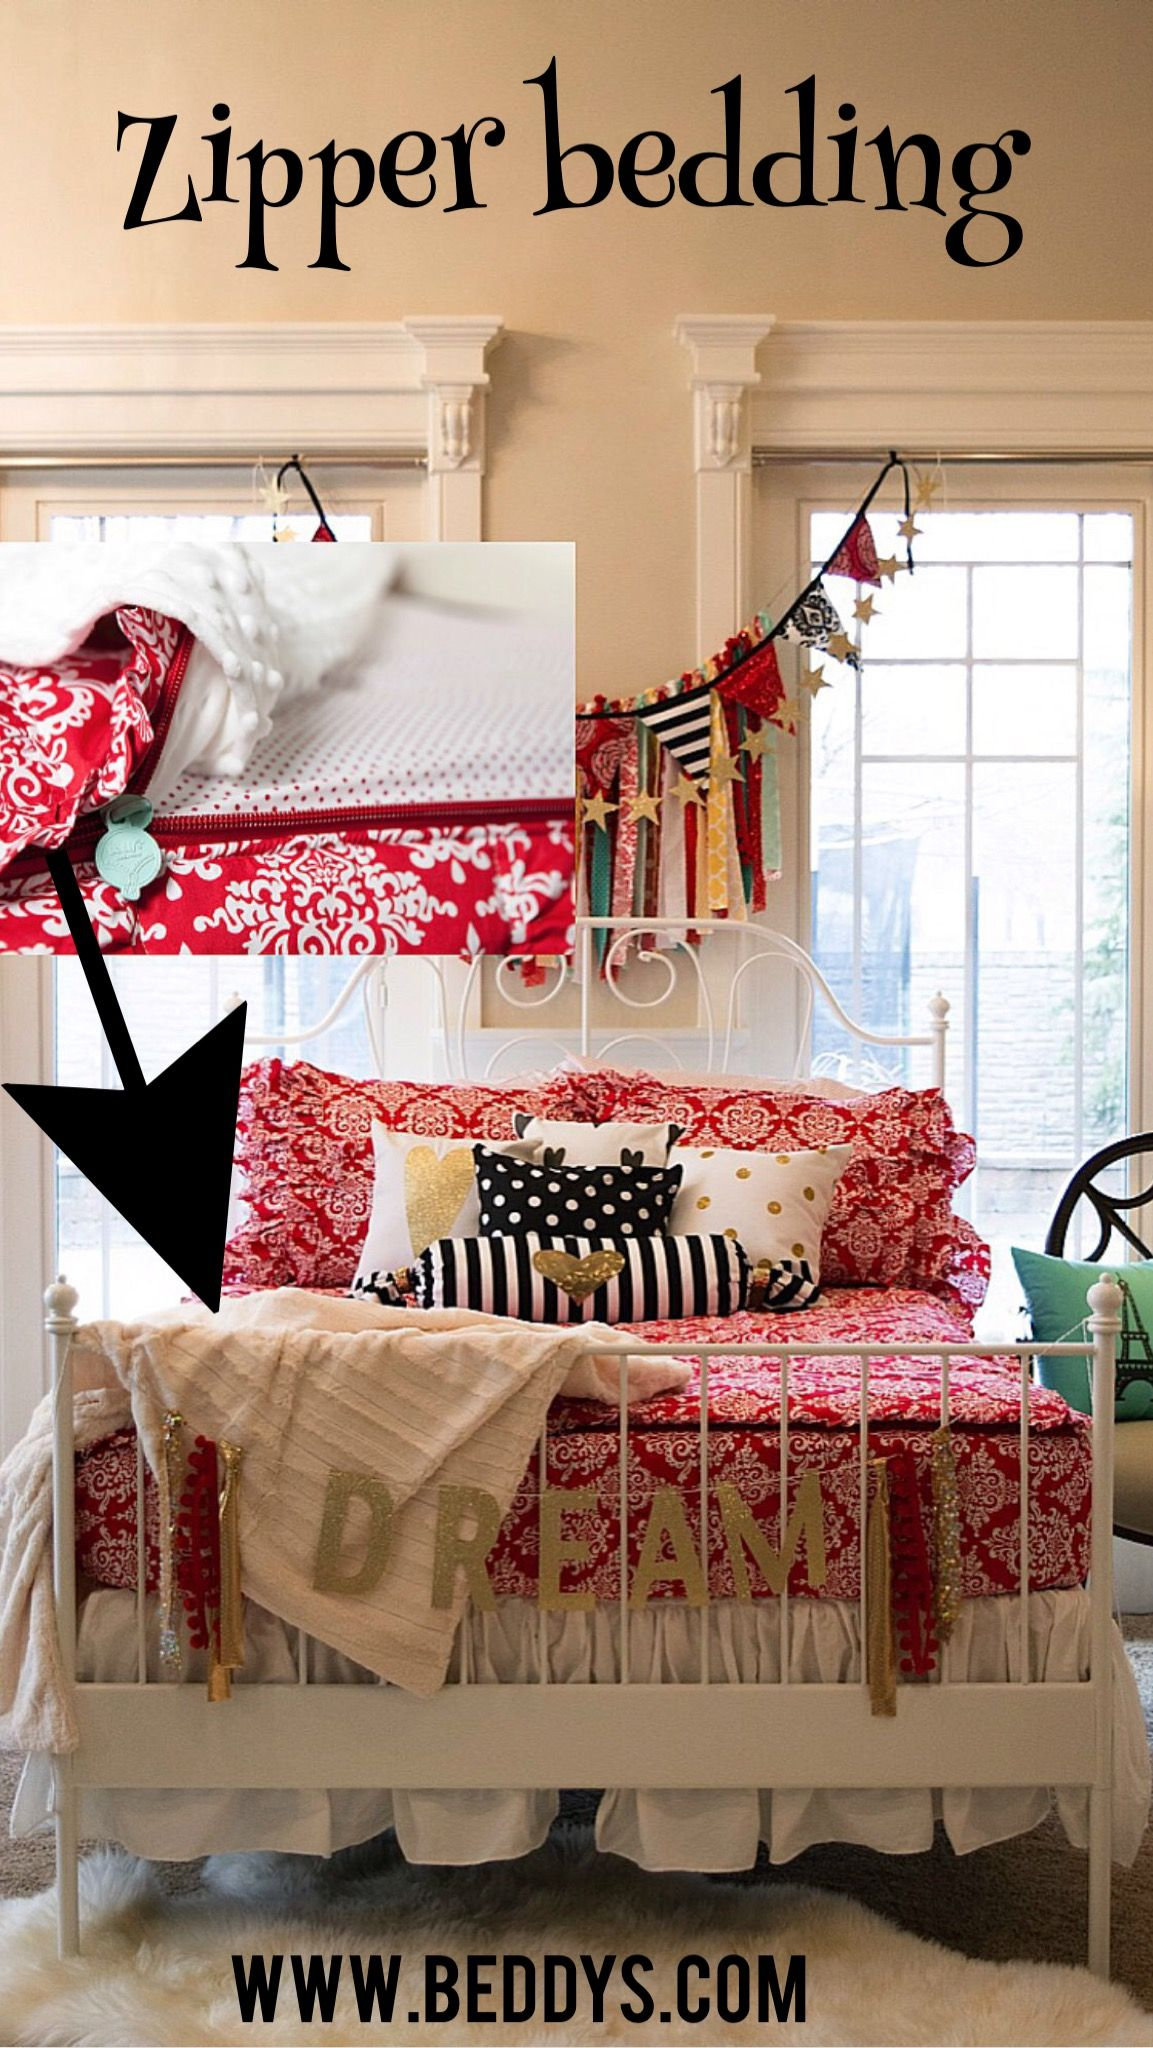 The only way to keep your bed looking this neat. Zipper